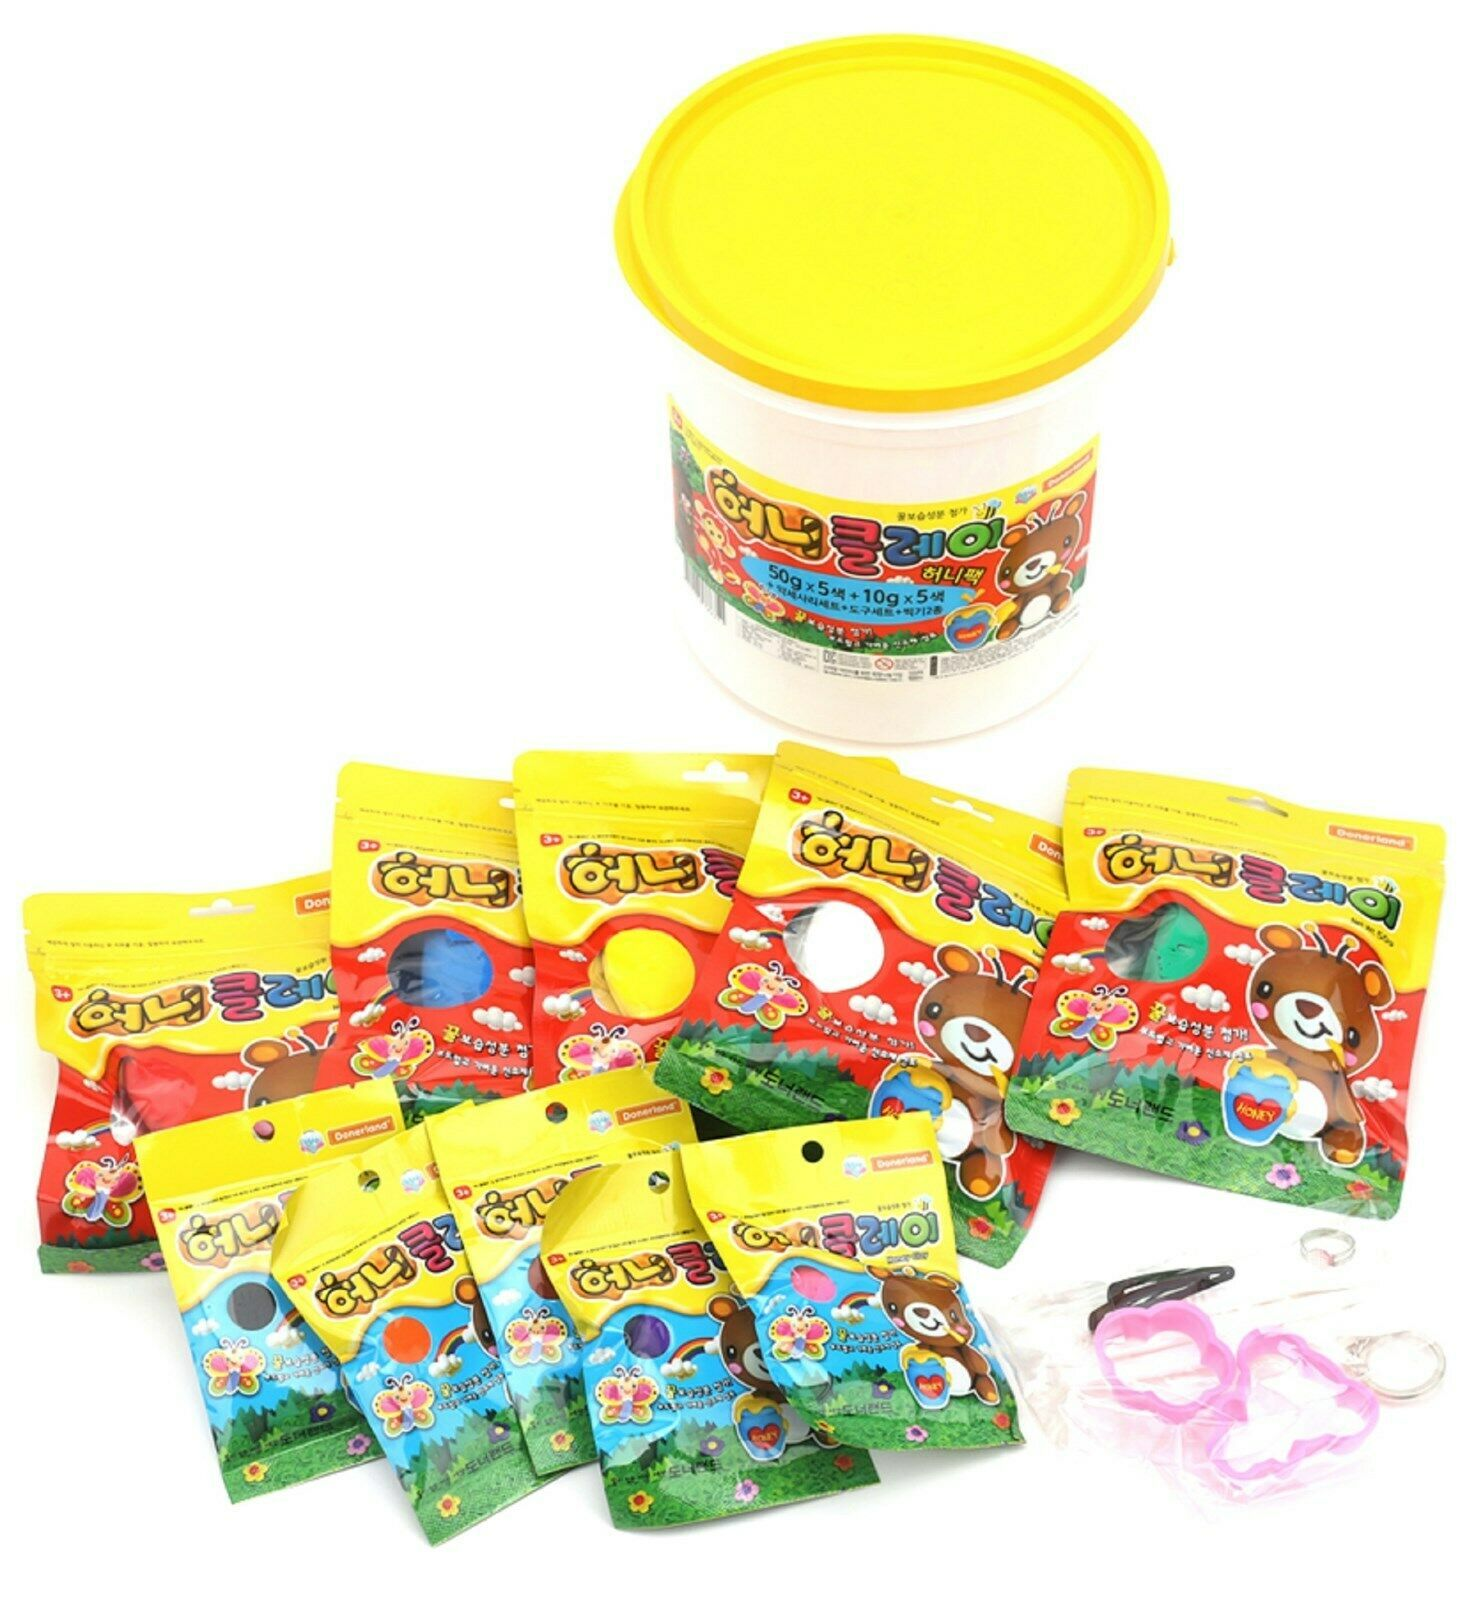 Donerland Honey Clay Honey Pack Set (50g x 5 Colors + 10g x 5 Colors) Dough Clay